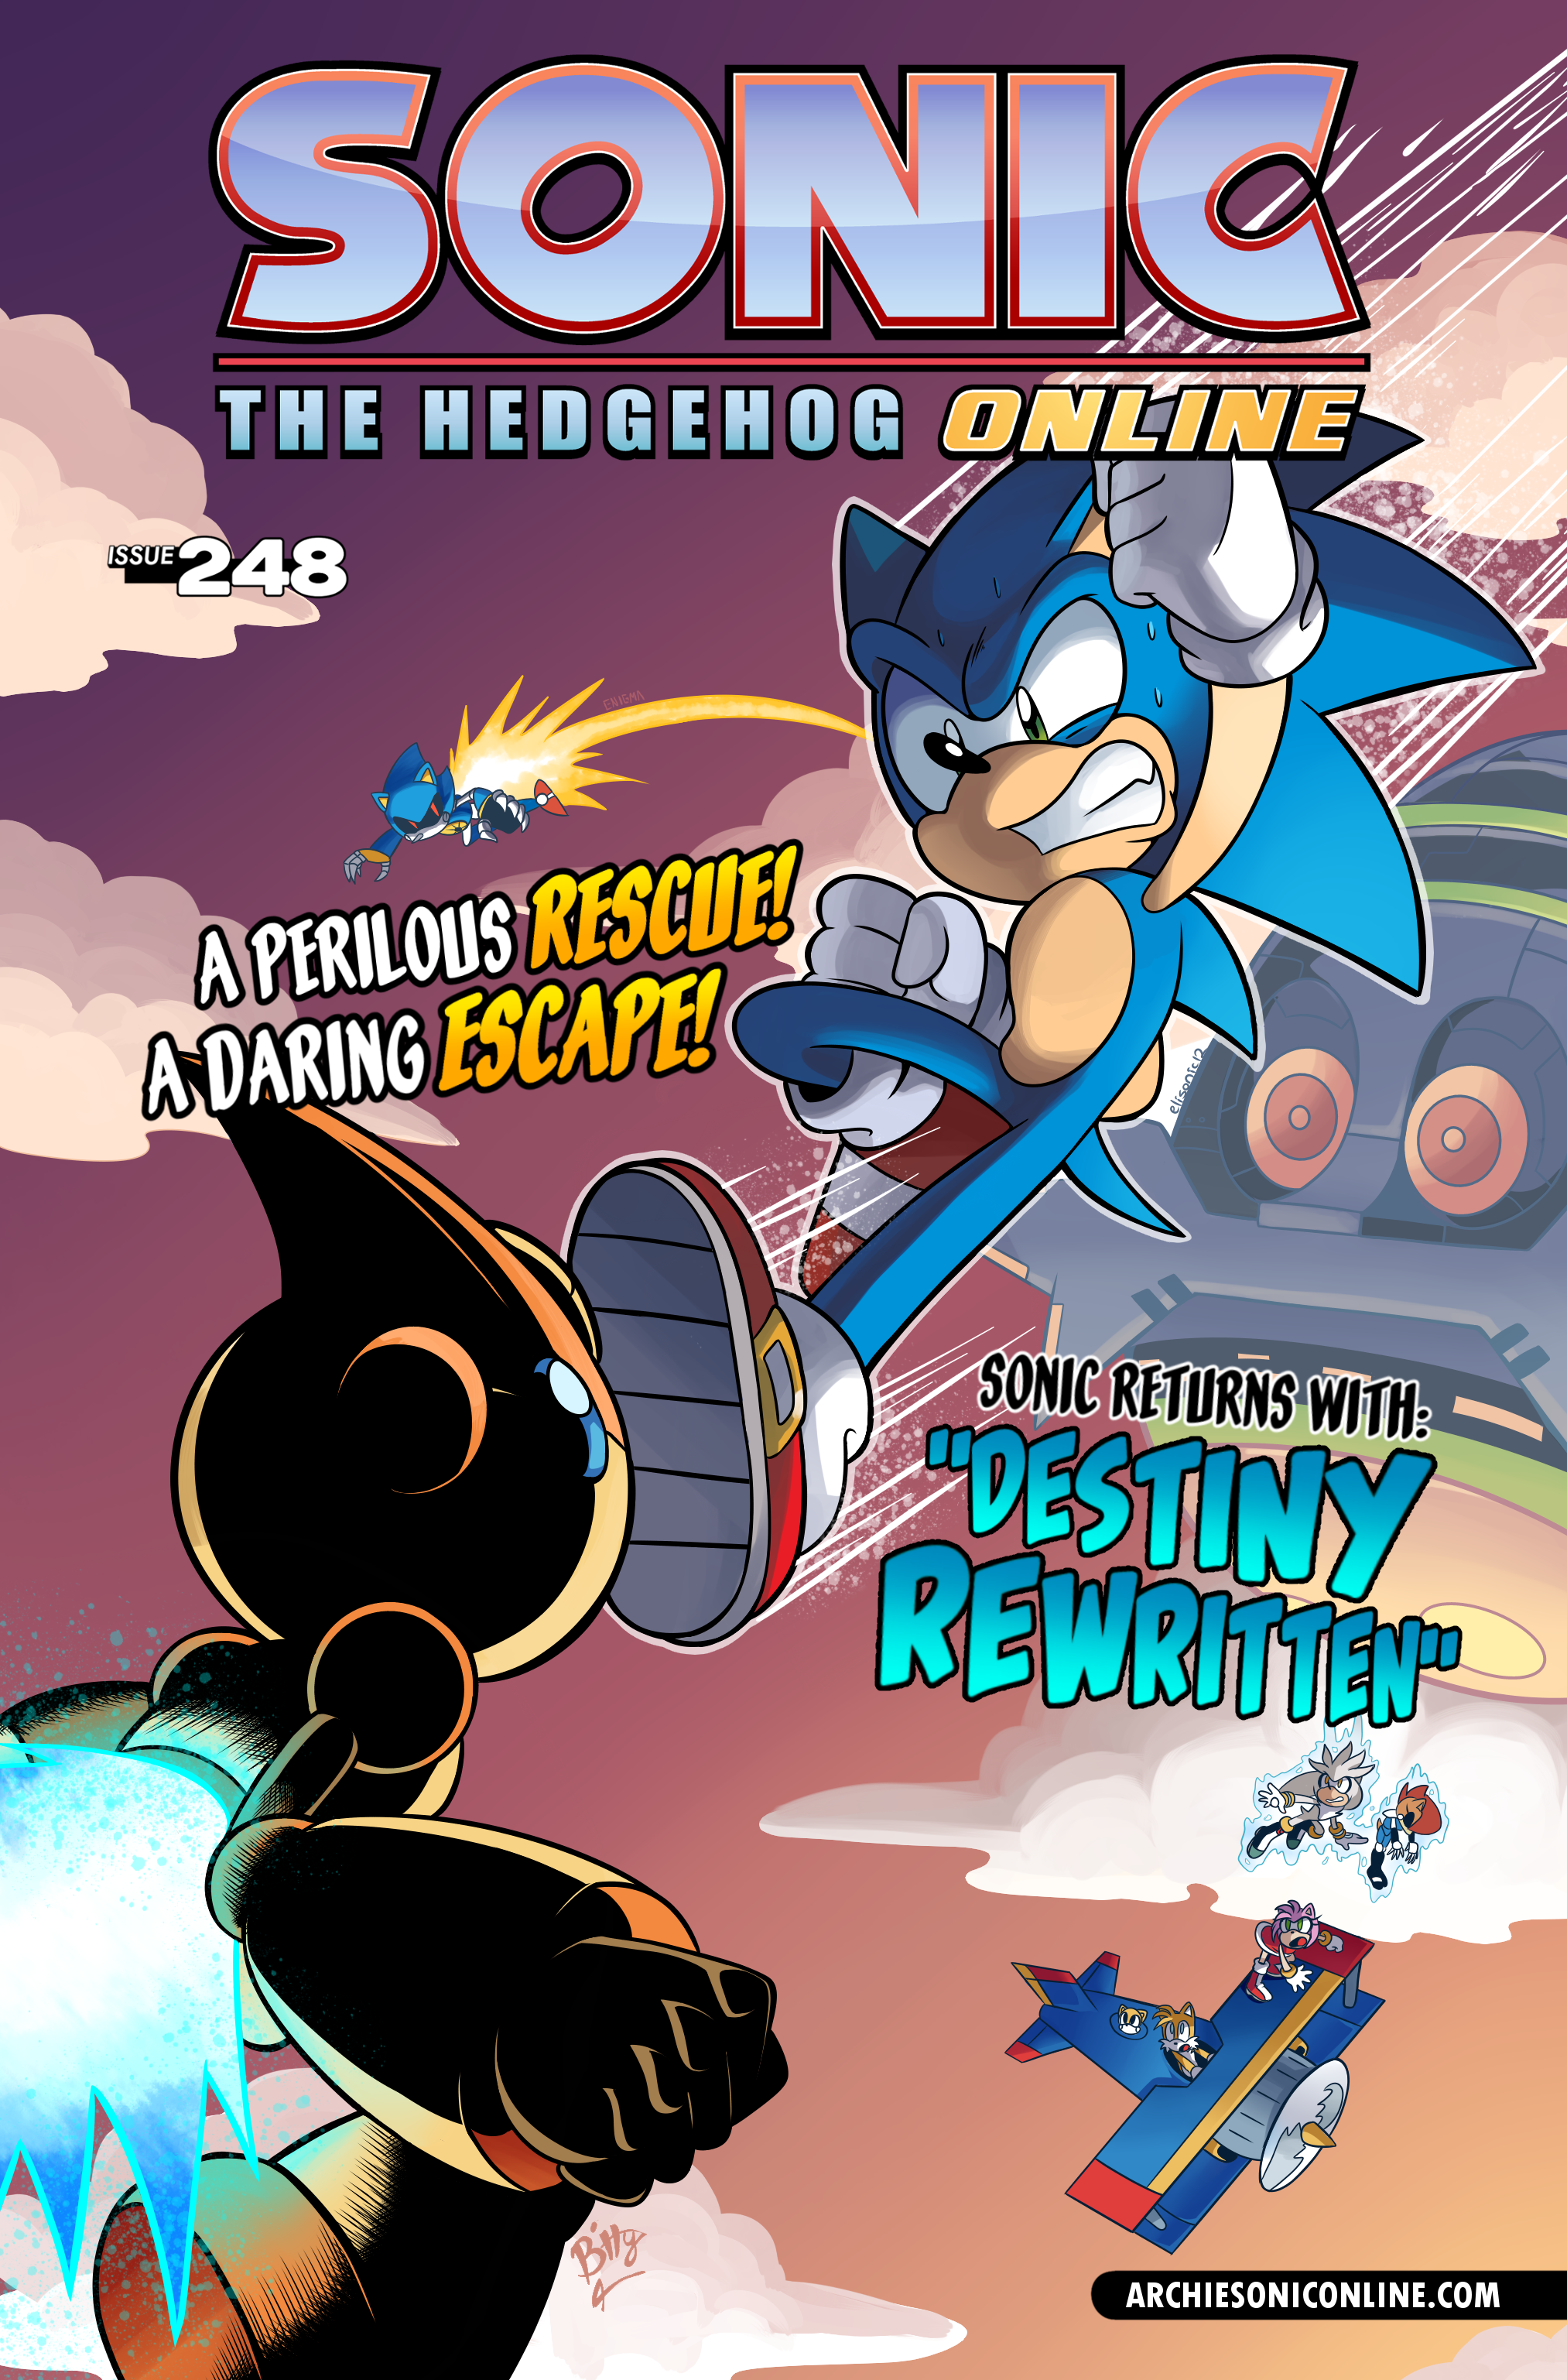 Sonic the Hedgehog Online #248 – Cover